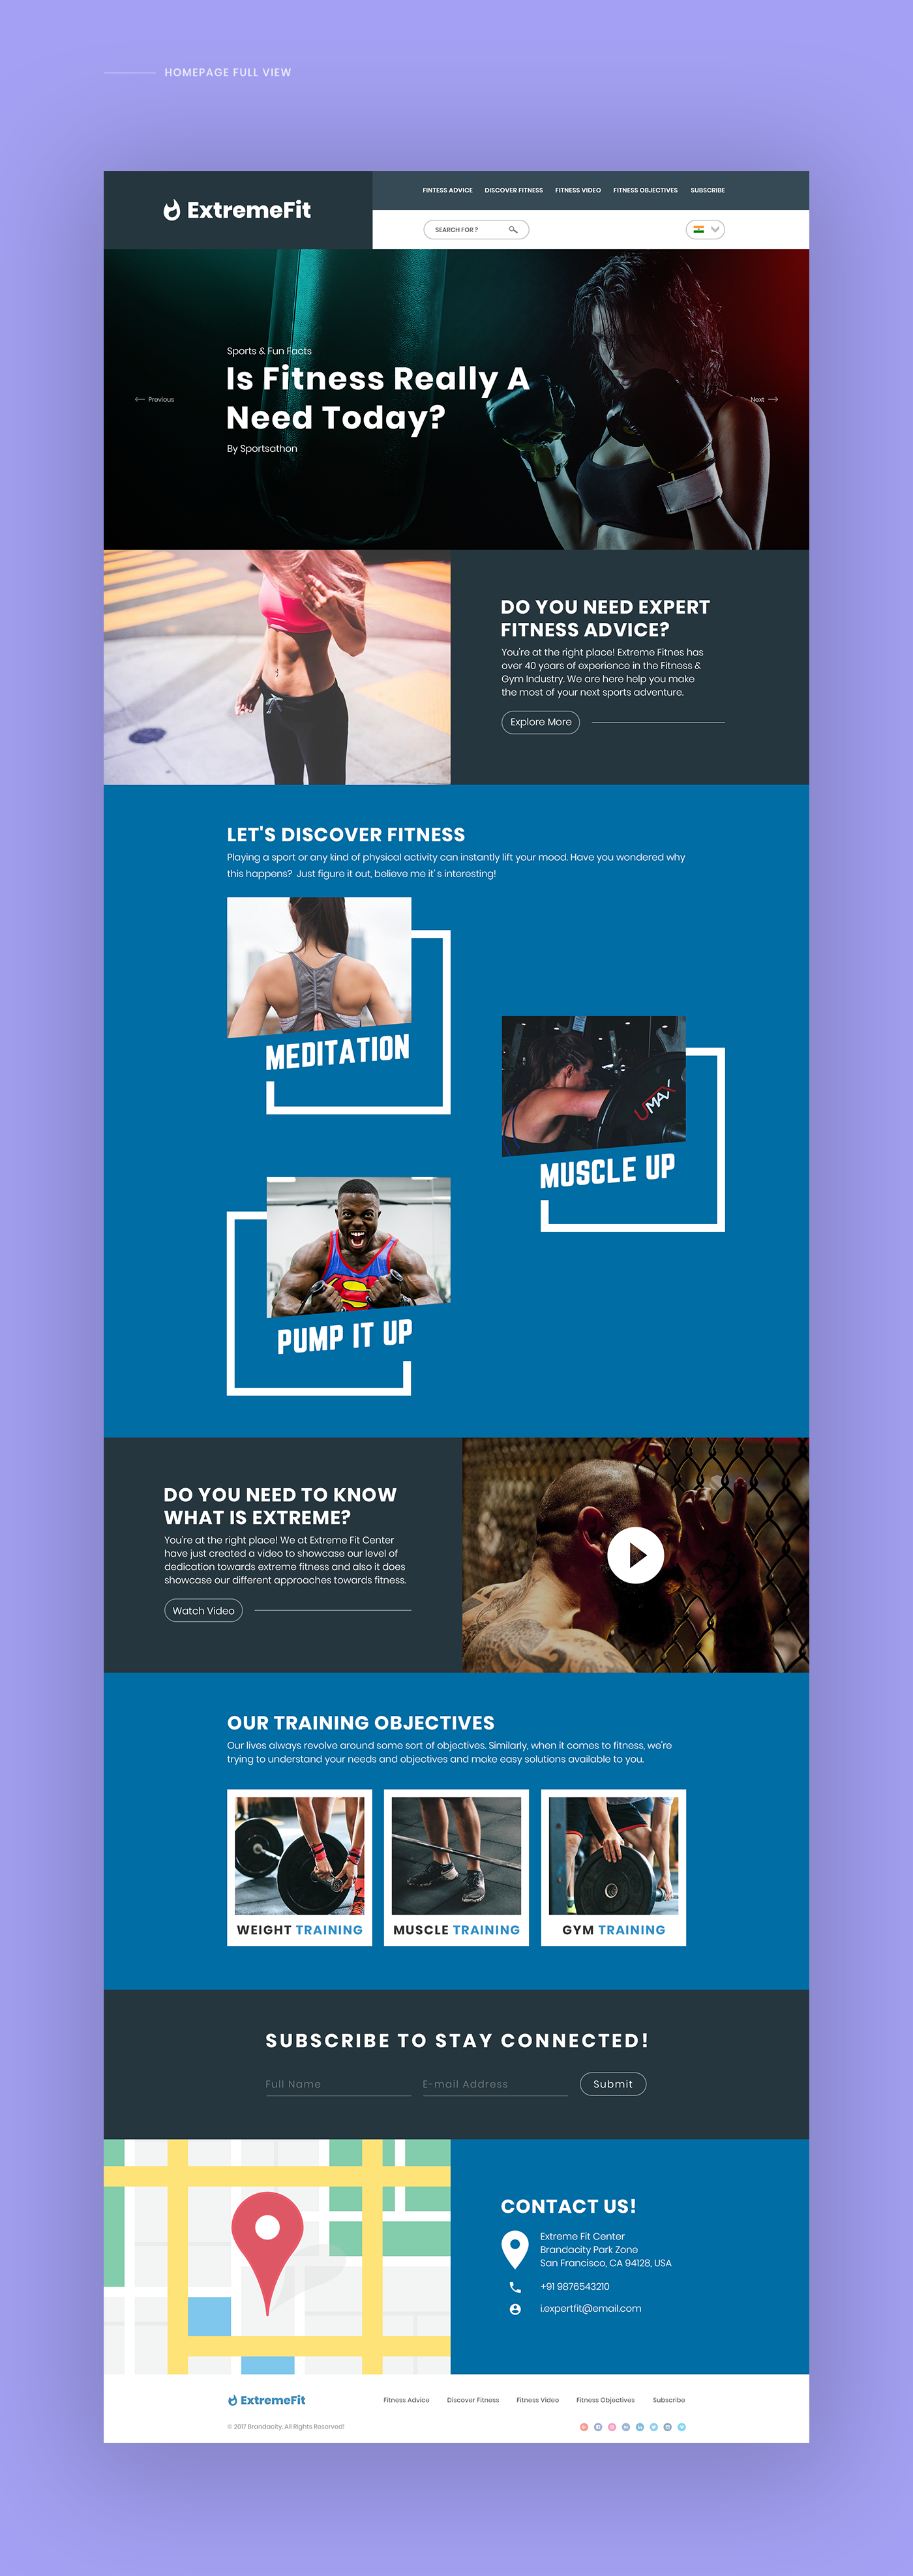 UI ux interaction Interface Web Design  motion graphic user interface user experience Case Study